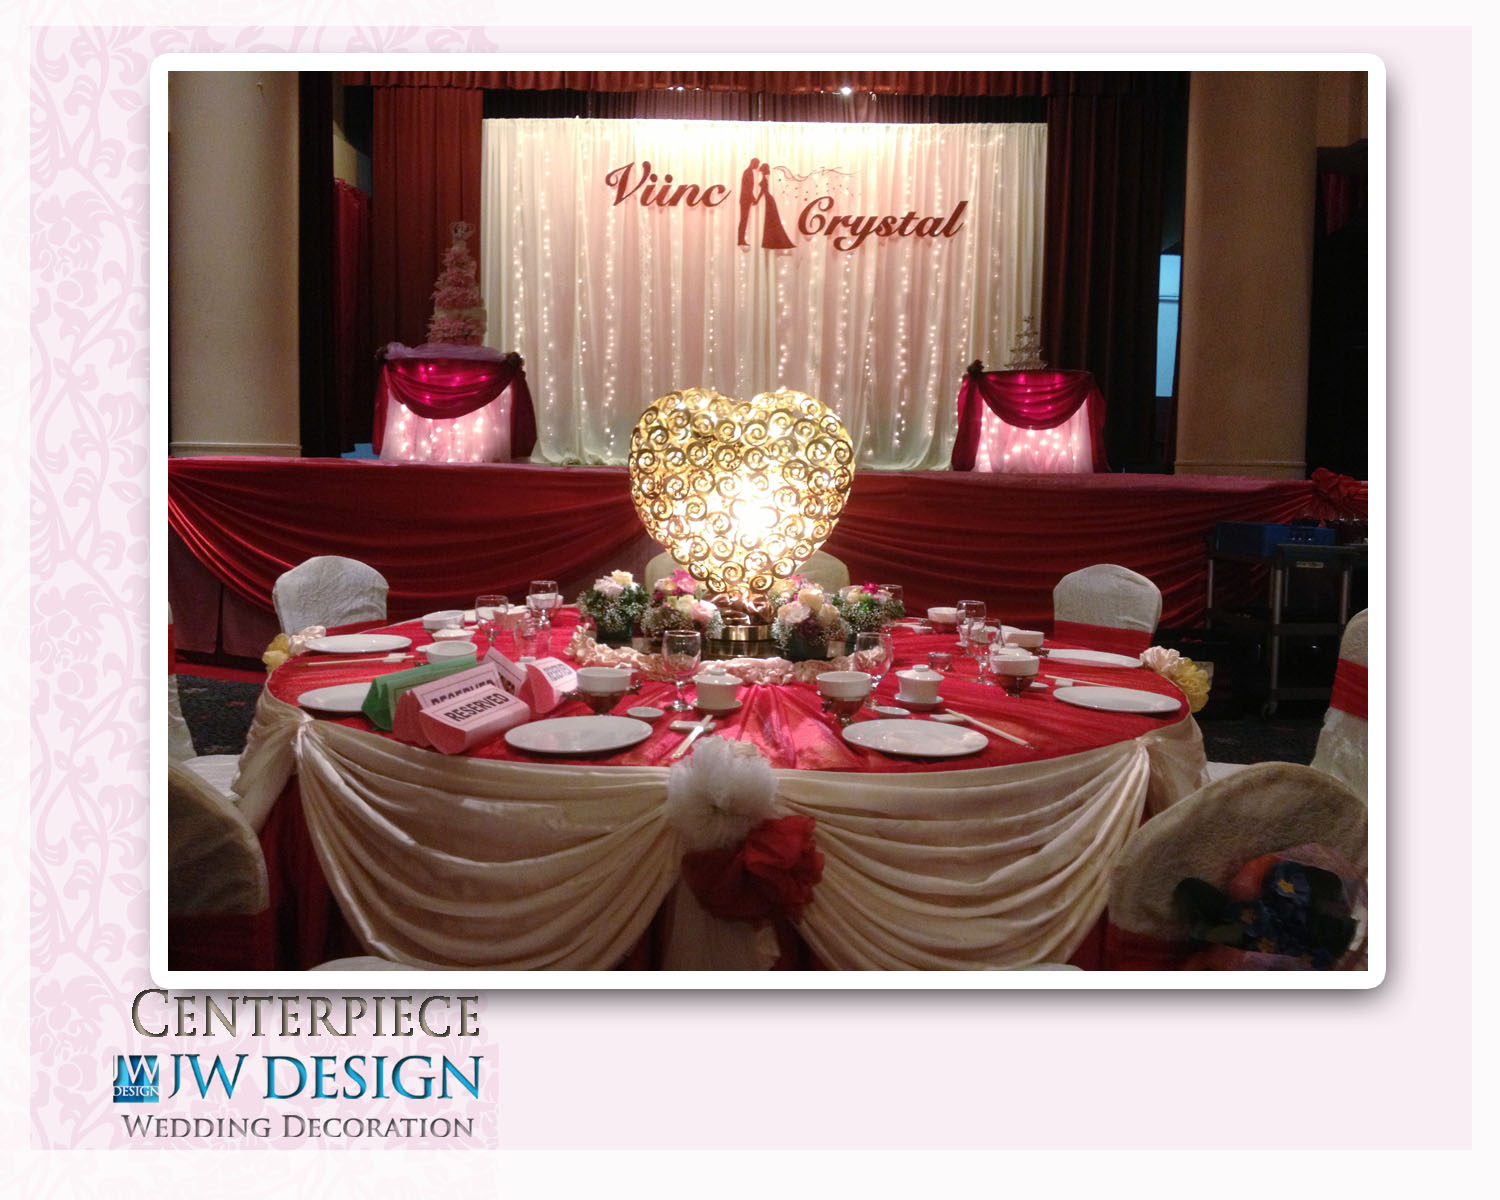 Jw design wedding decoration viincs crystal wedding klang posted by jw design wedding decoration at 820 pm junglespirit Gallery